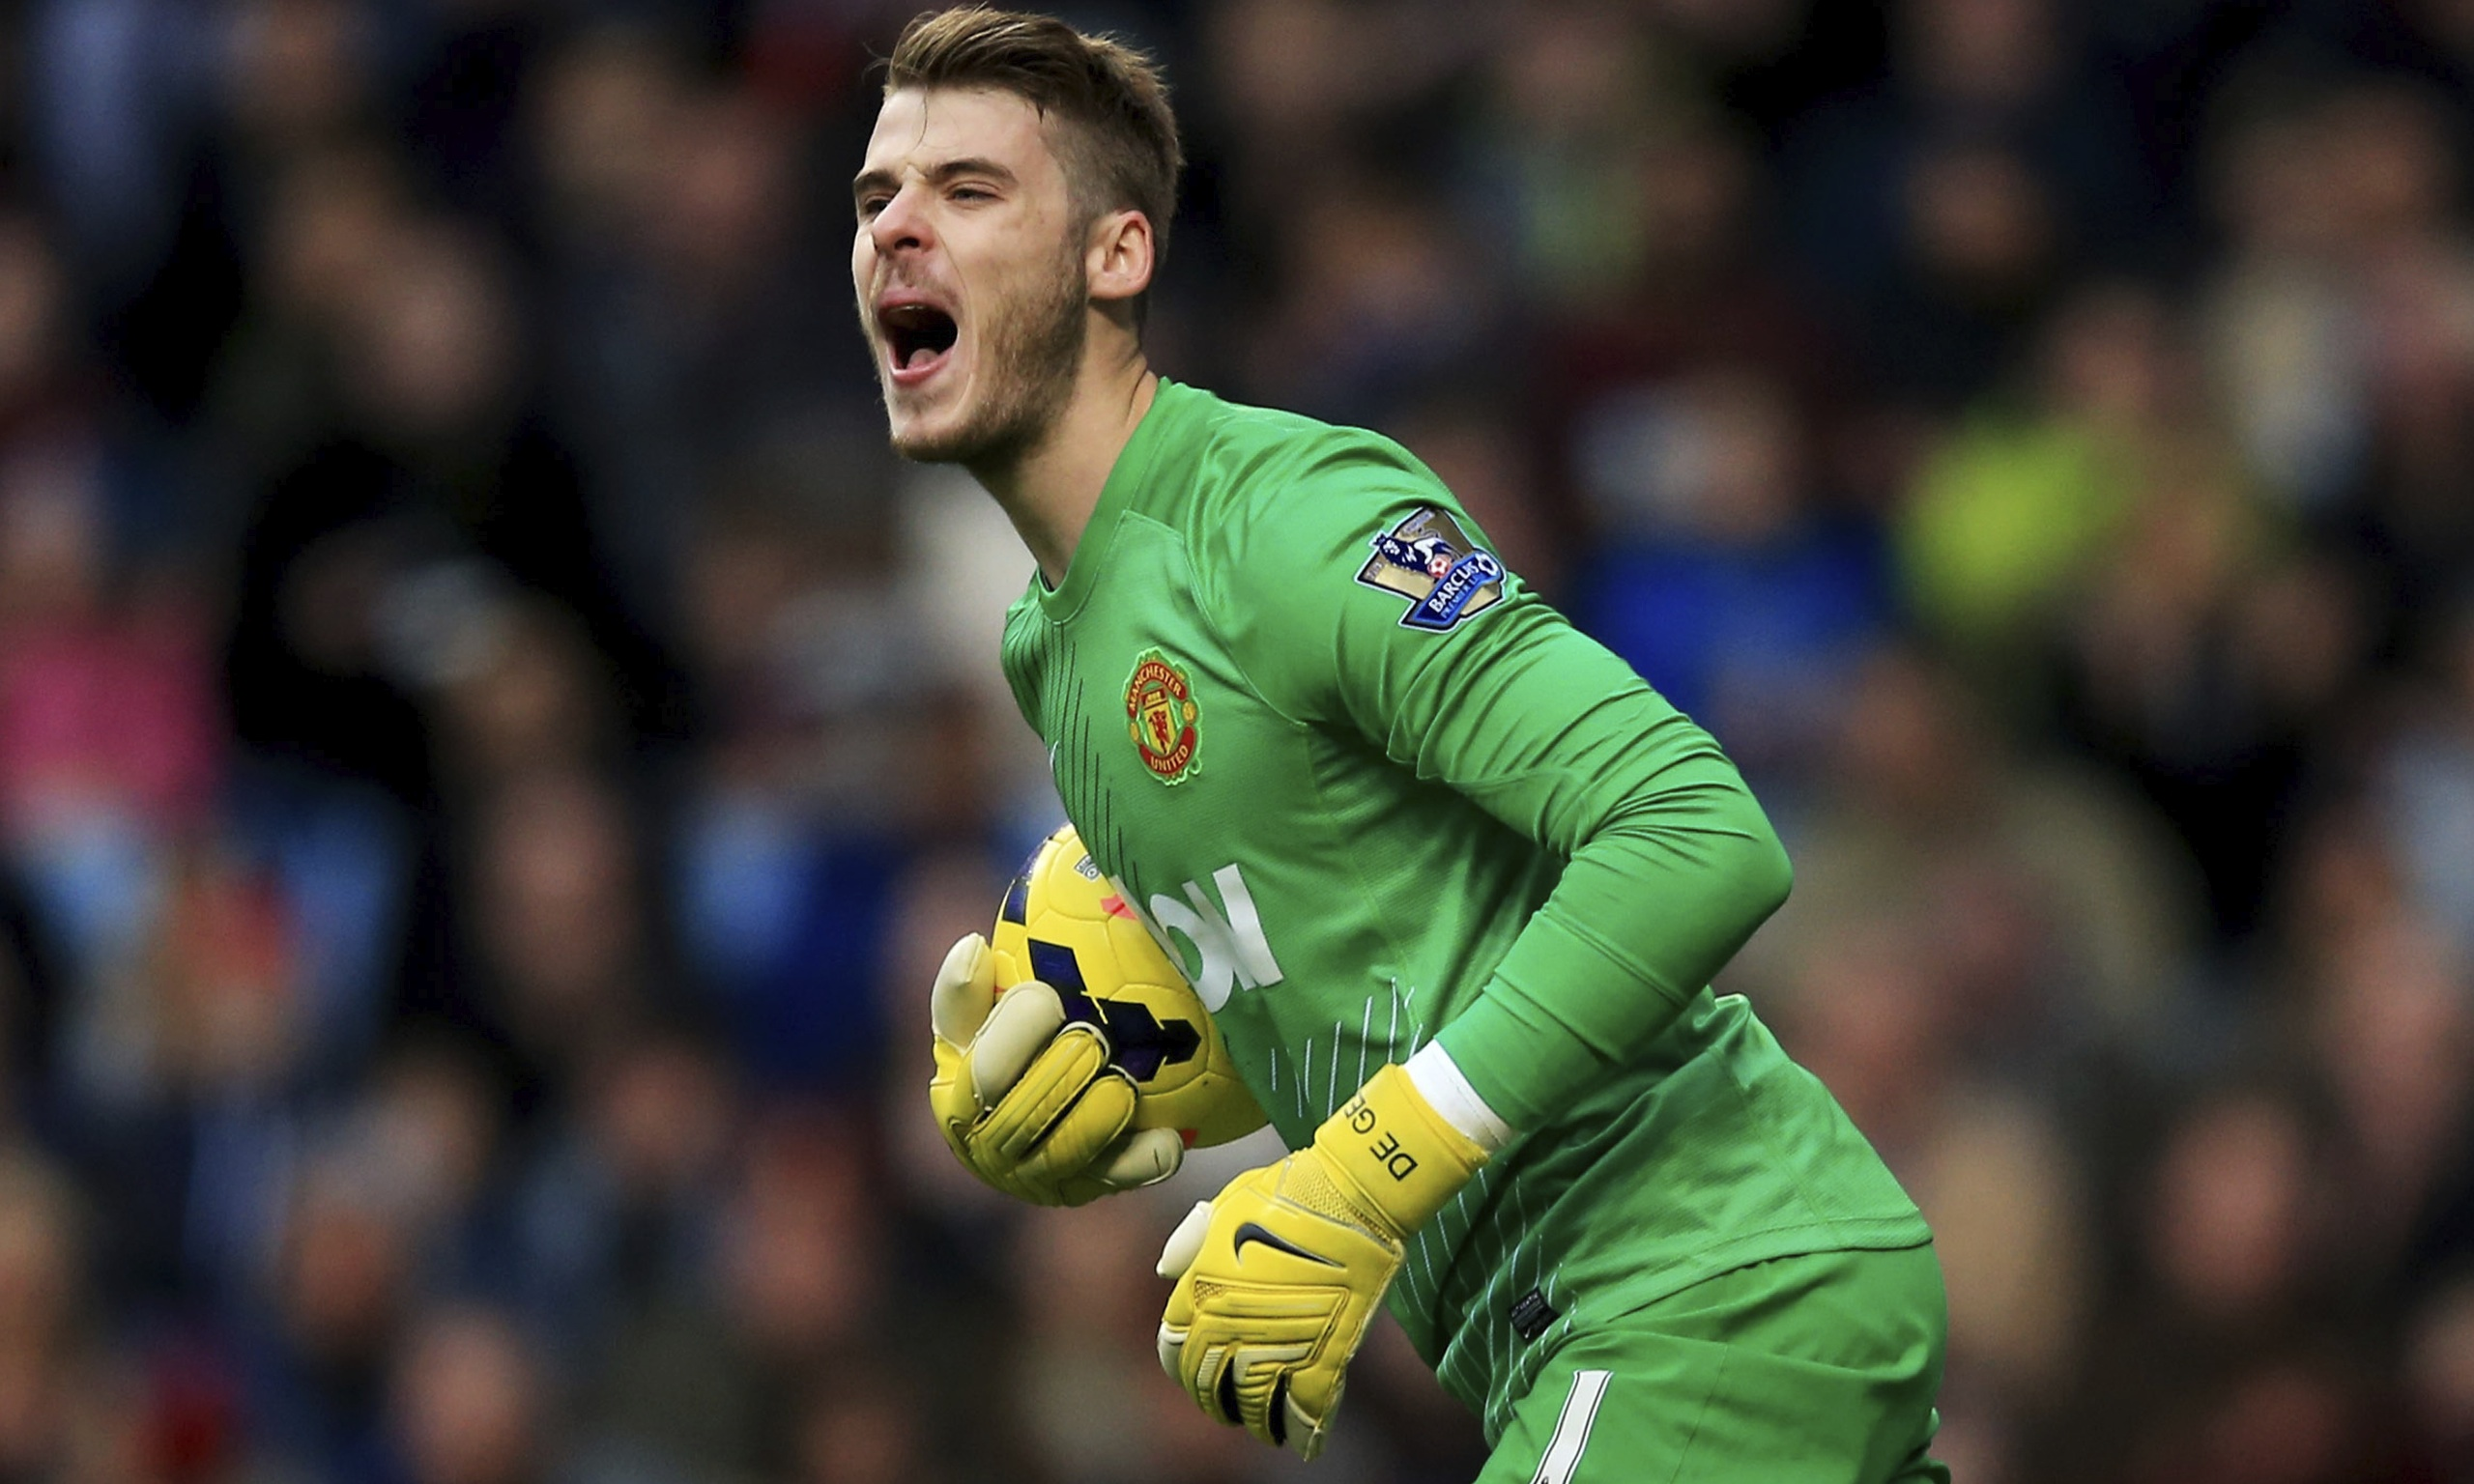 David de Gea has reached new heights this season